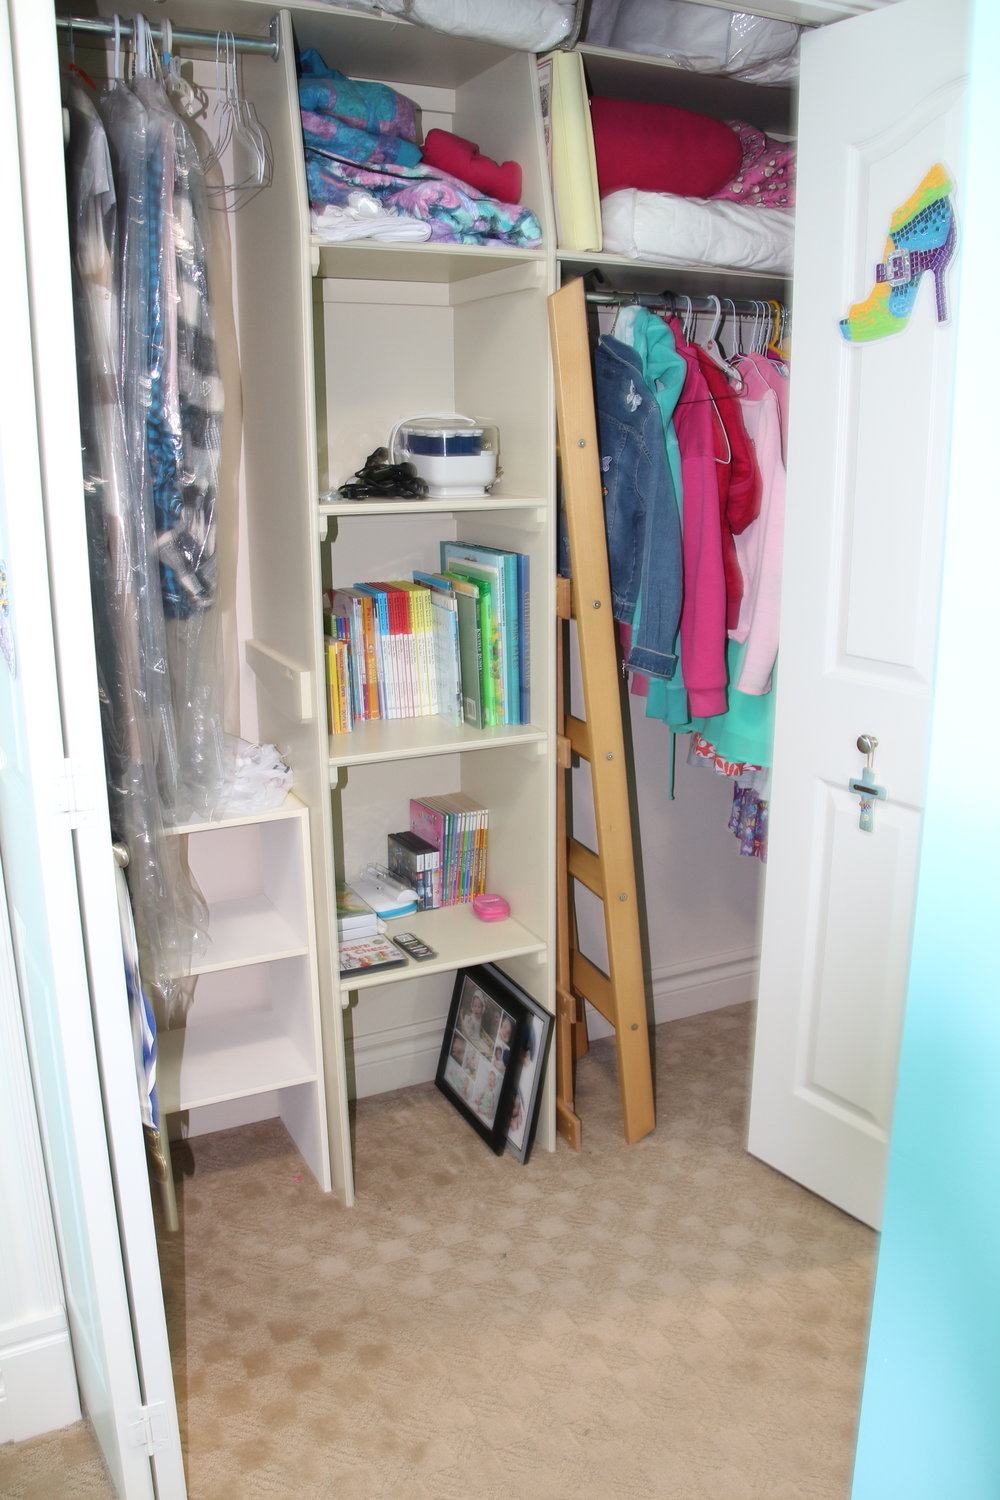 After-Child's closet